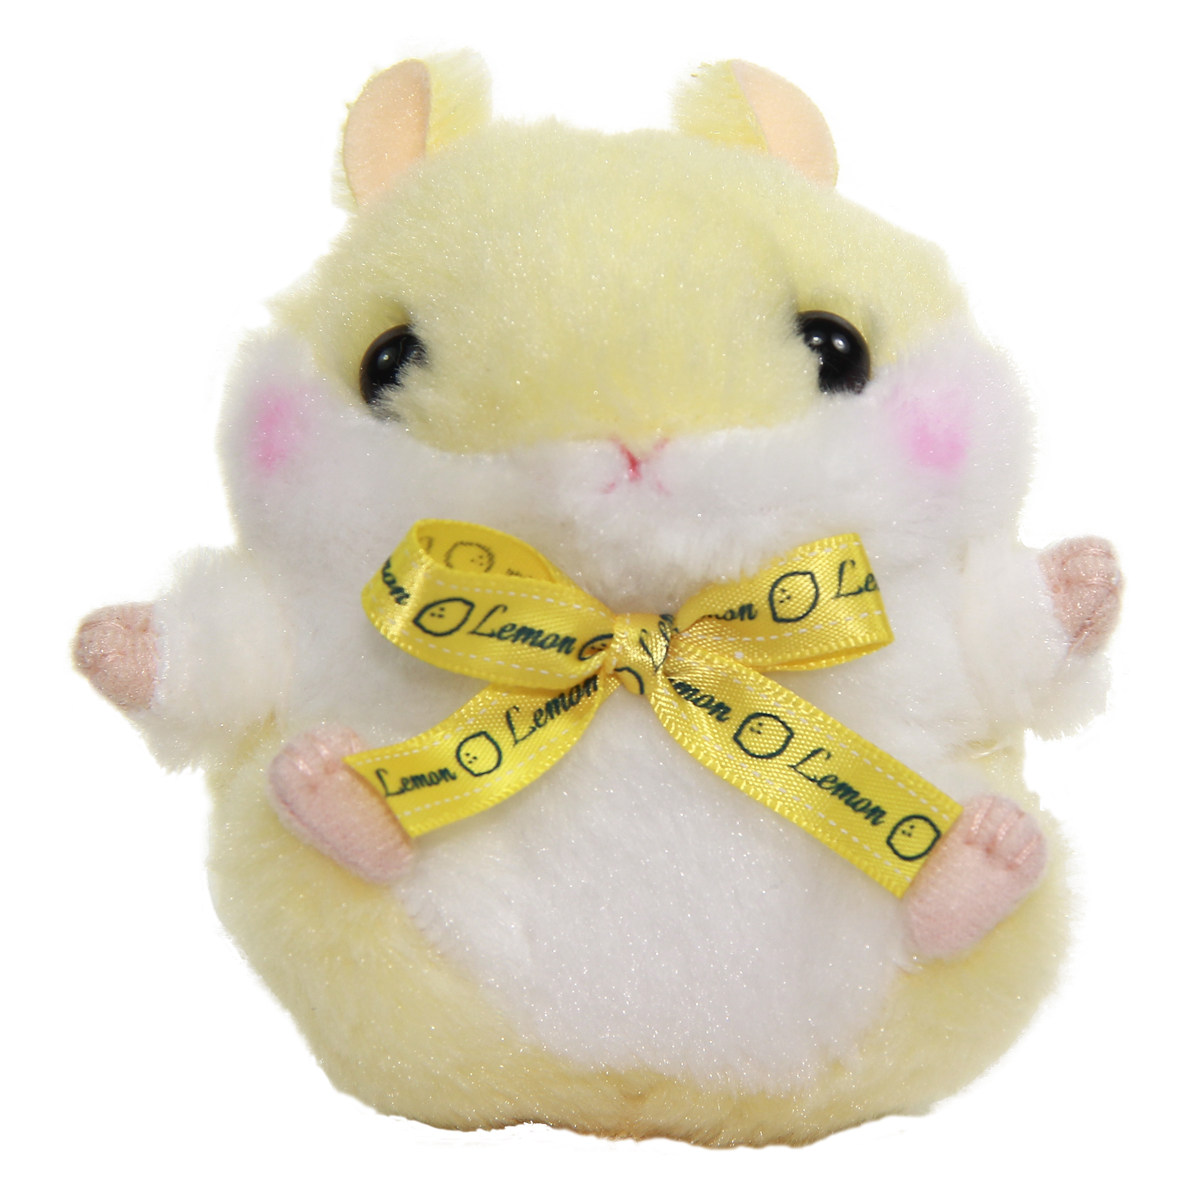 Plush Hamster, Amuse Colorful Fruits Plush Collection, Lemon-chan, Yellow, 4 Inches